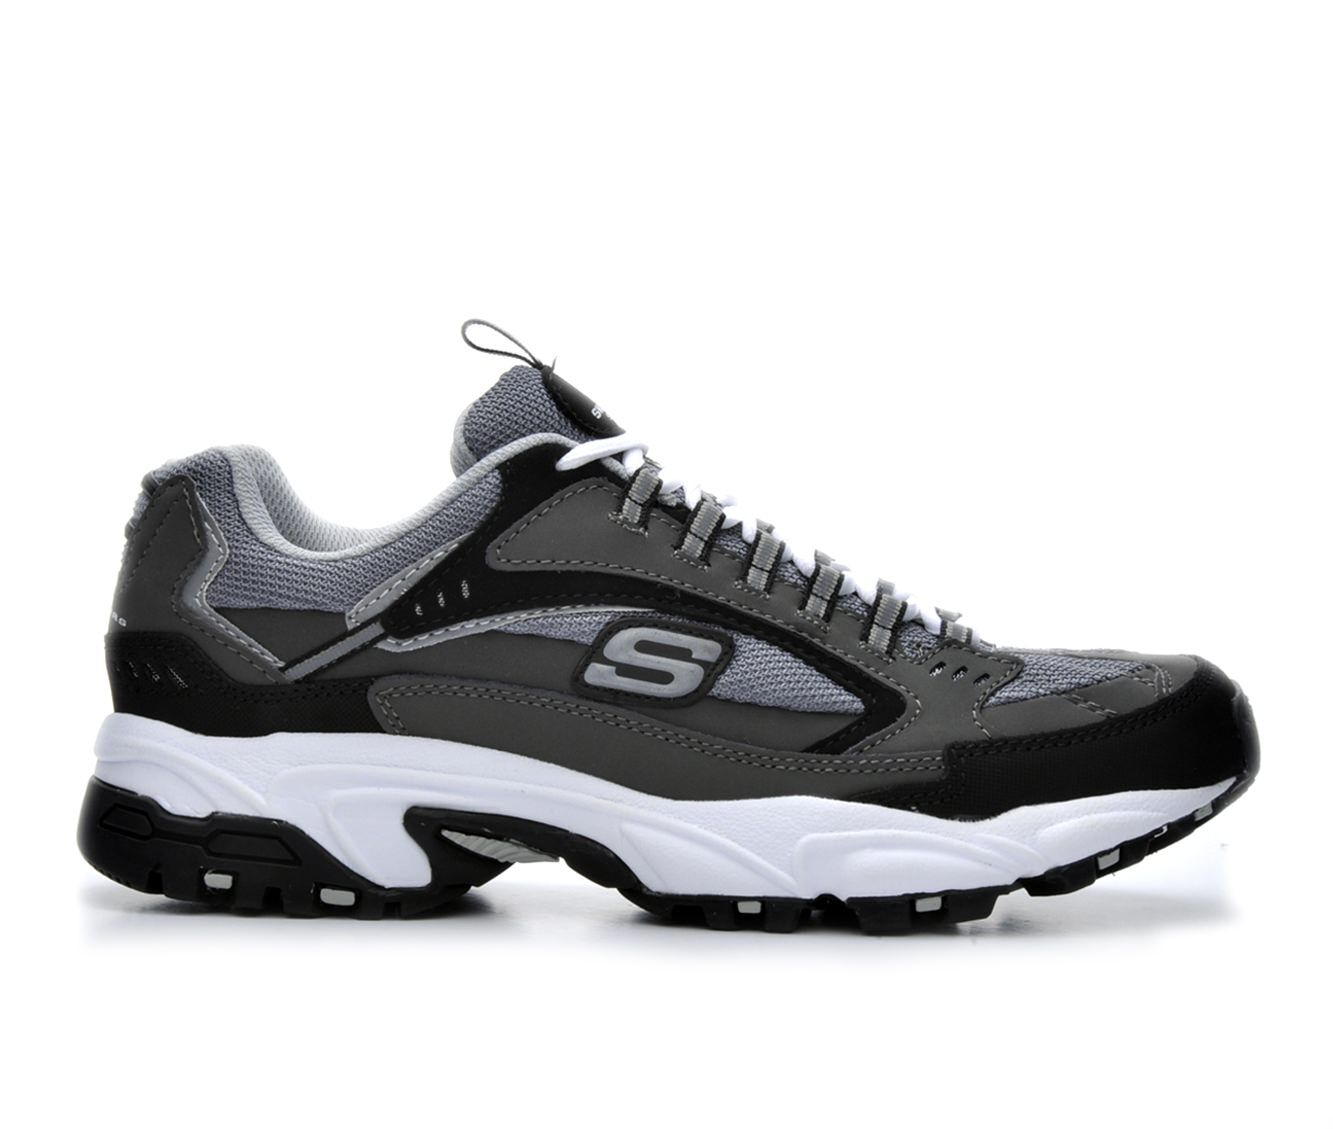 Enchanting Men's Skechers Cutback 51286 Training Shoes Gry/Blk/Wht